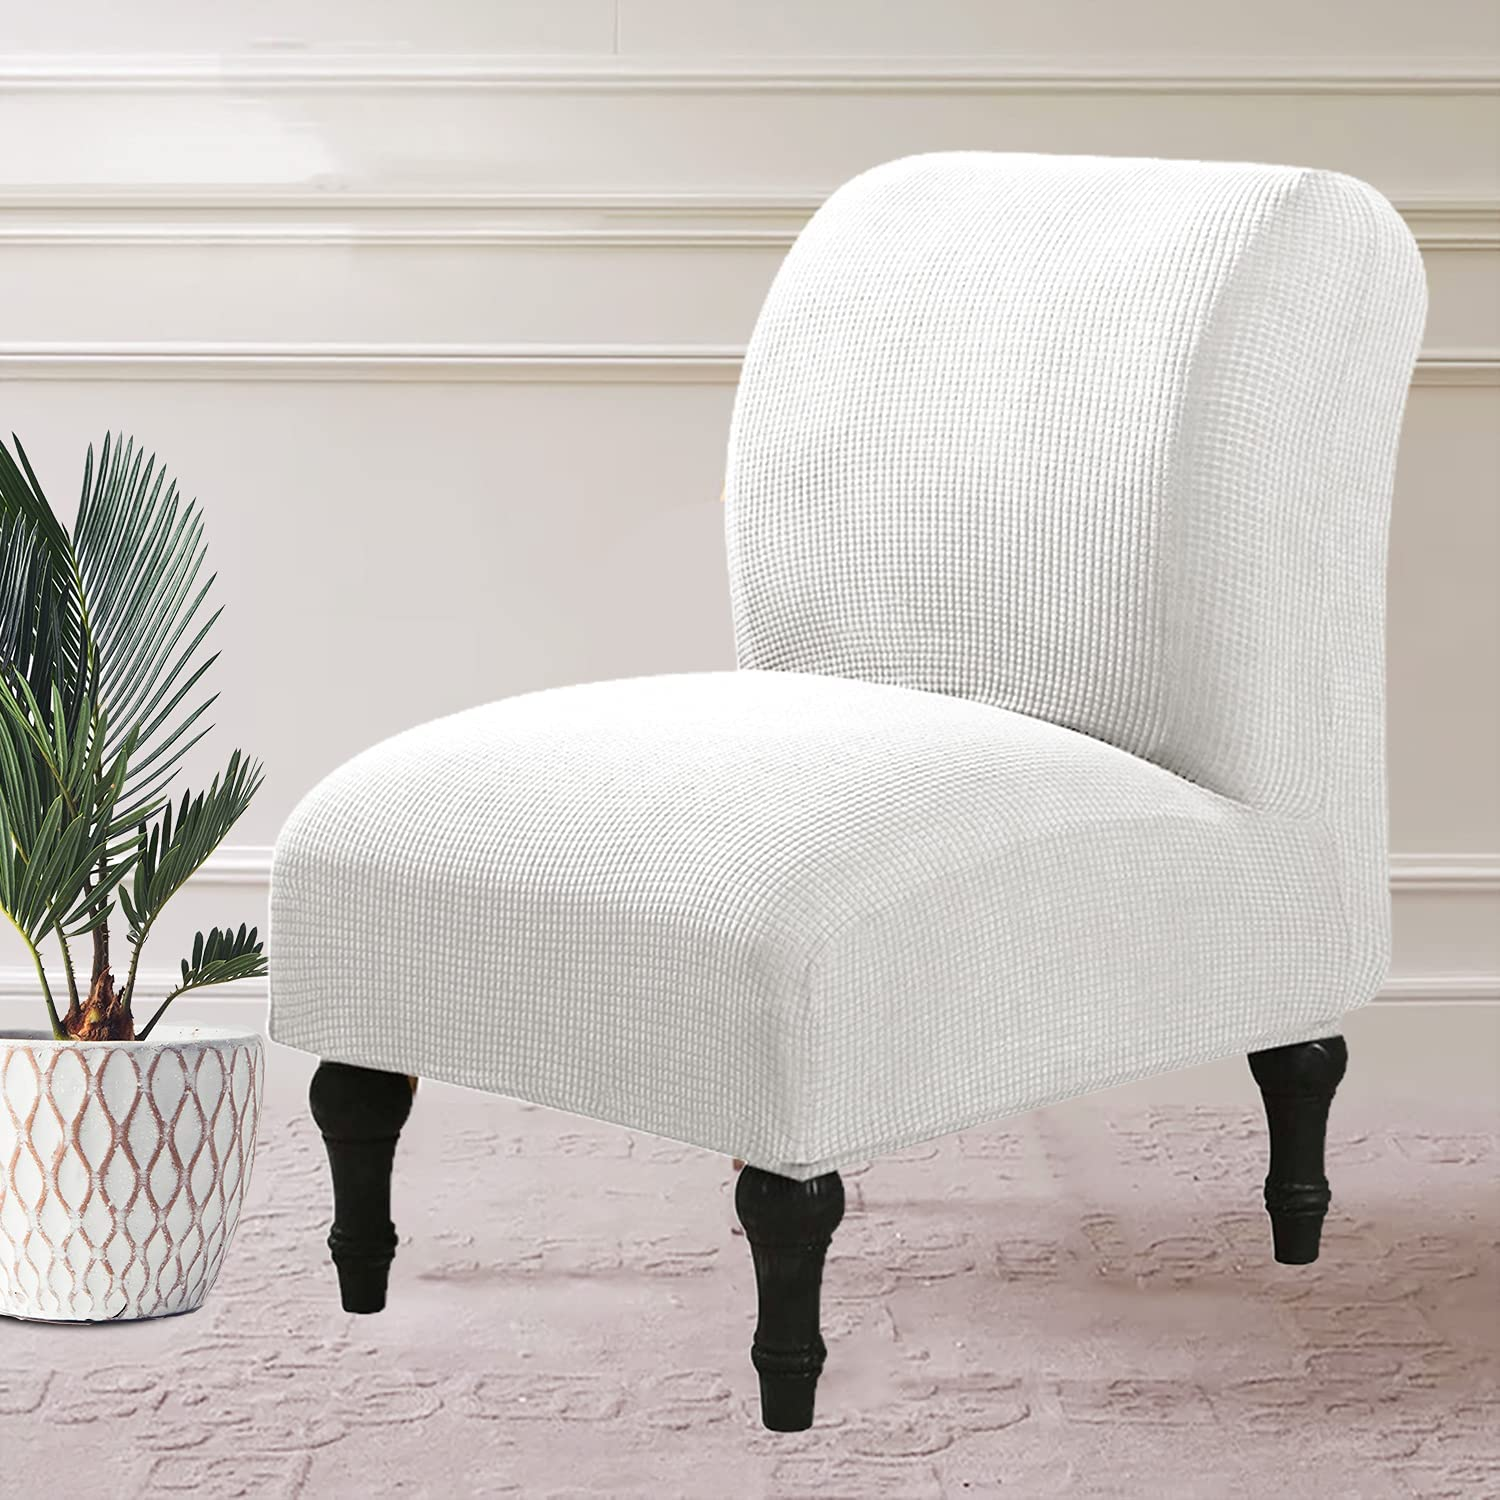 Stretch Max 88% OFF Jacquard Armless 100% quality warranty! Accent Chair Spandex Armles White Cover